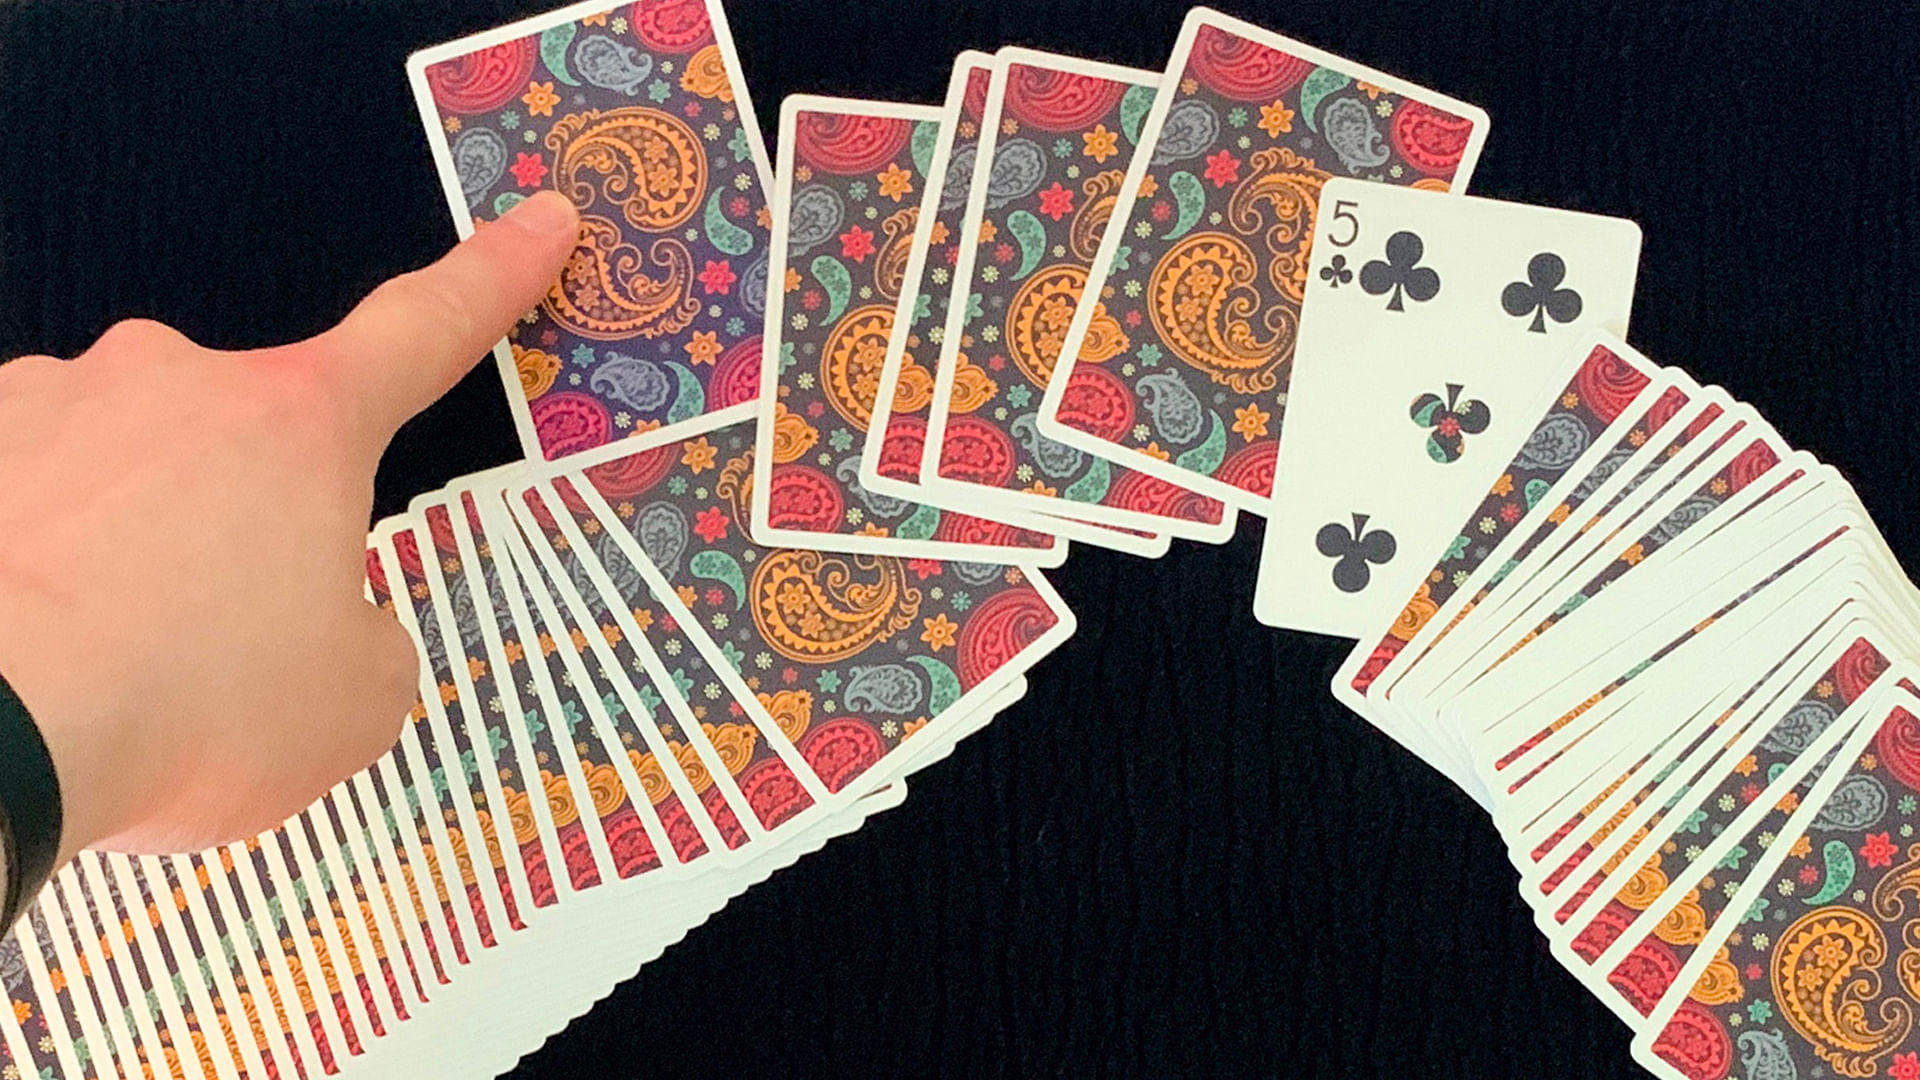 Amaze Your Friends With These Easy Card Tricks